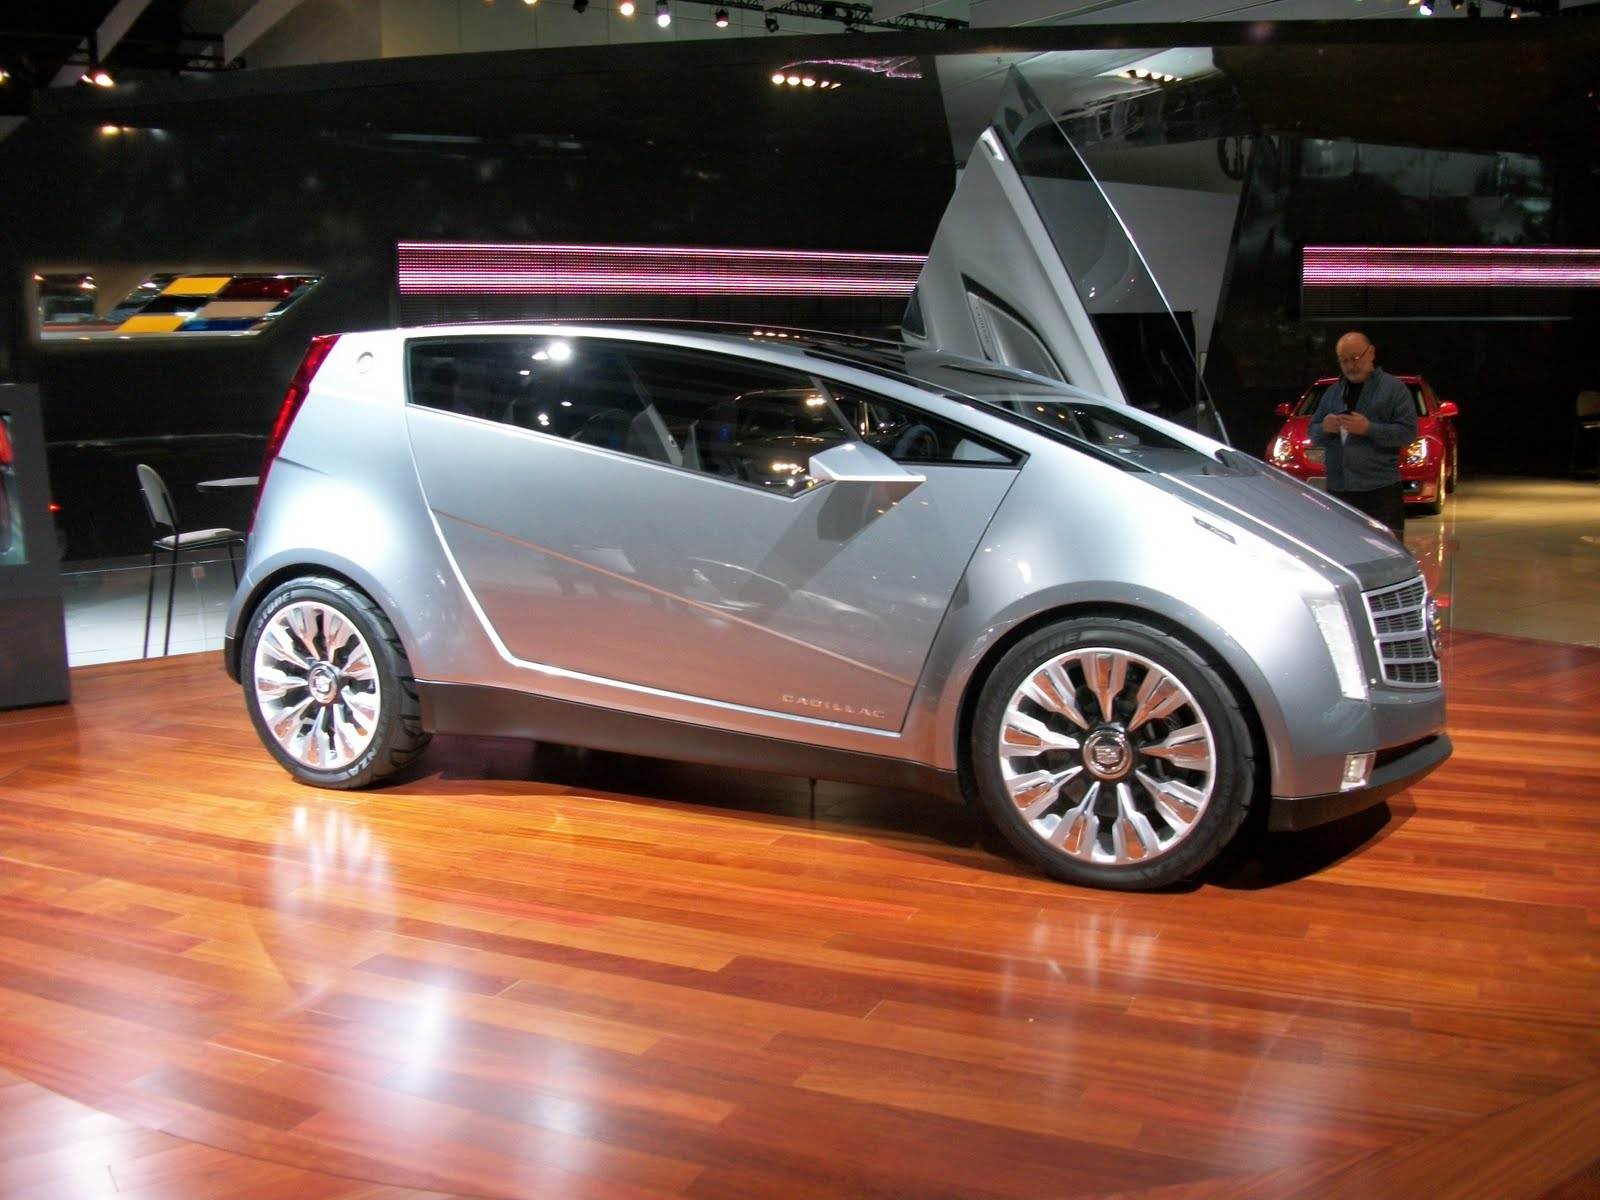 Car And While The Overall Look Is Less Than Smart Concept Itself Thought Provoking Makes Us Truly Wonder What Nice People At Cadillac